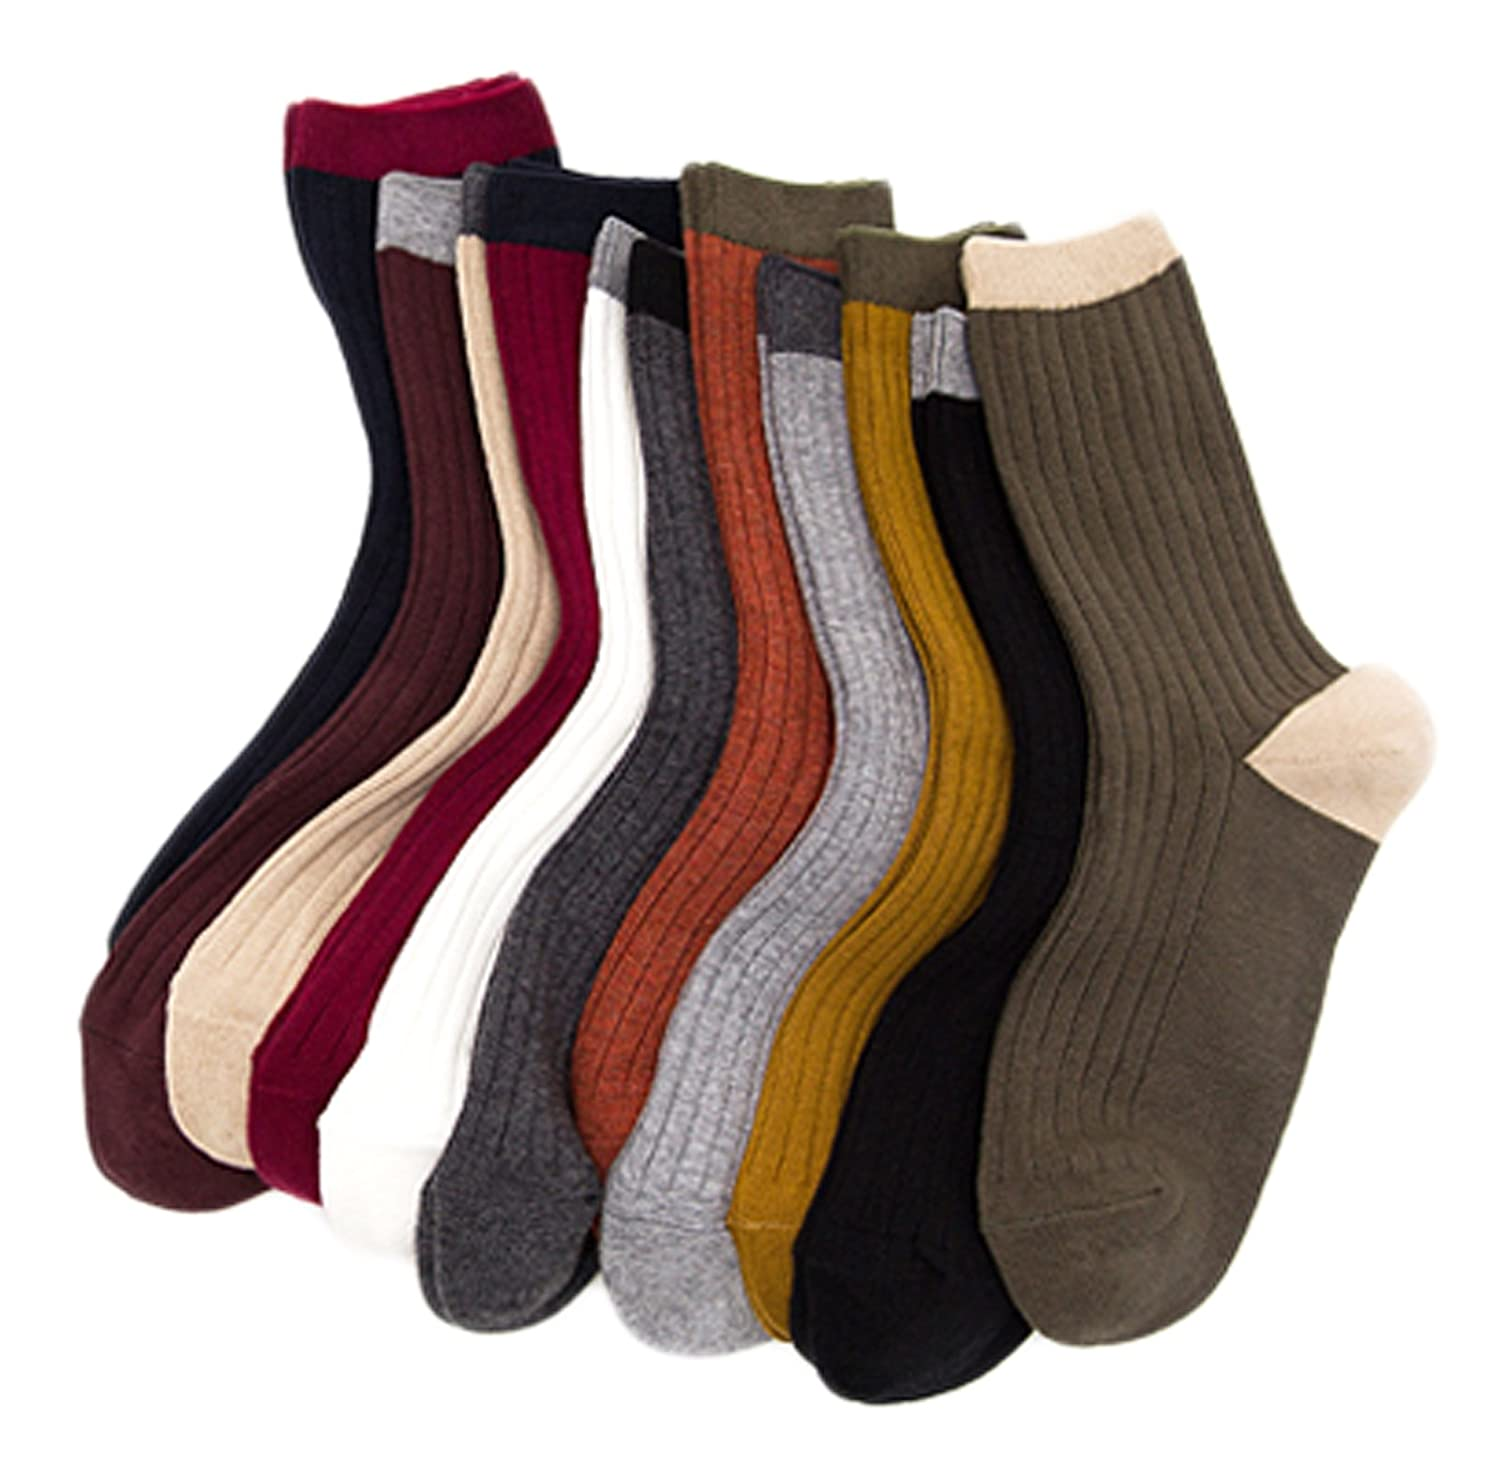 c2eb8838a32 Women combed cotton crew socks with stylish patterns and bright colors to  make your socks able to match different shoes in the Spring and beyond!